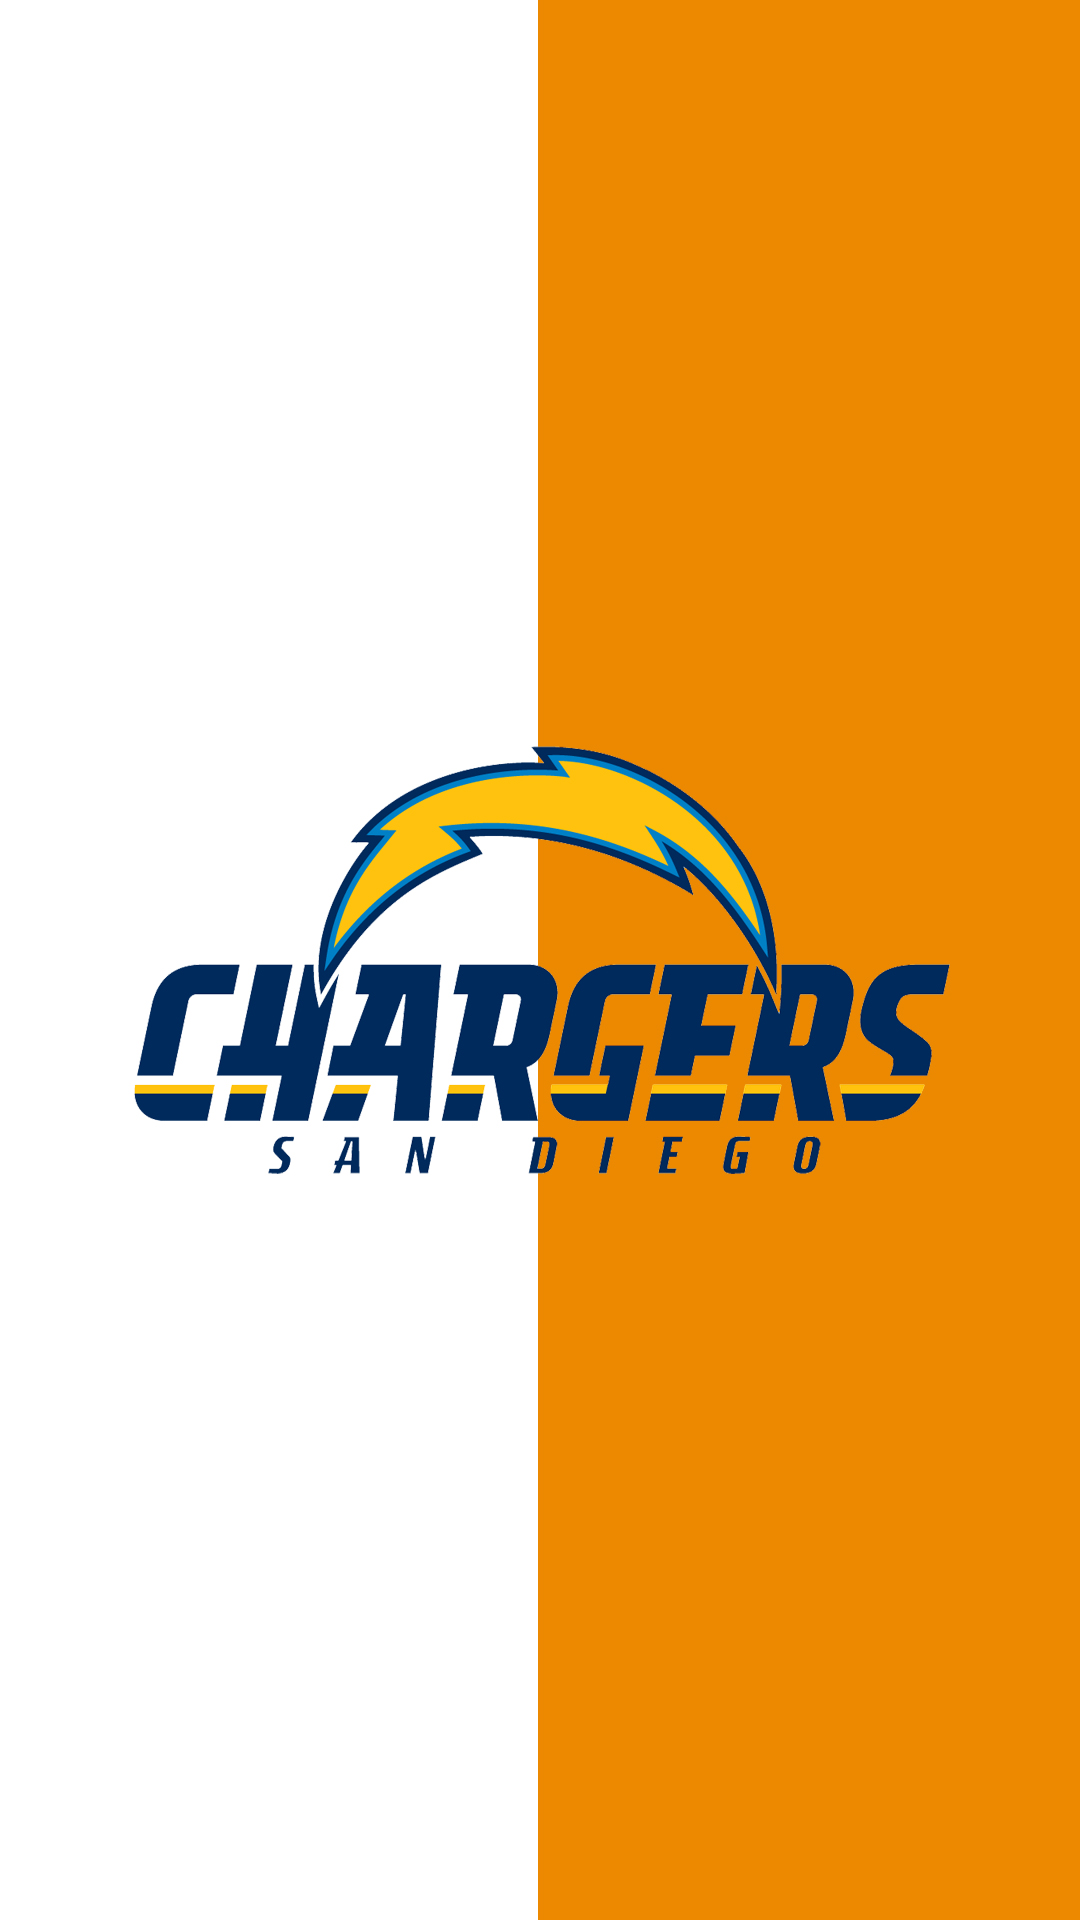 San Diego Chargers Wallpaper Iphone By Mattiebonez On Deviantart